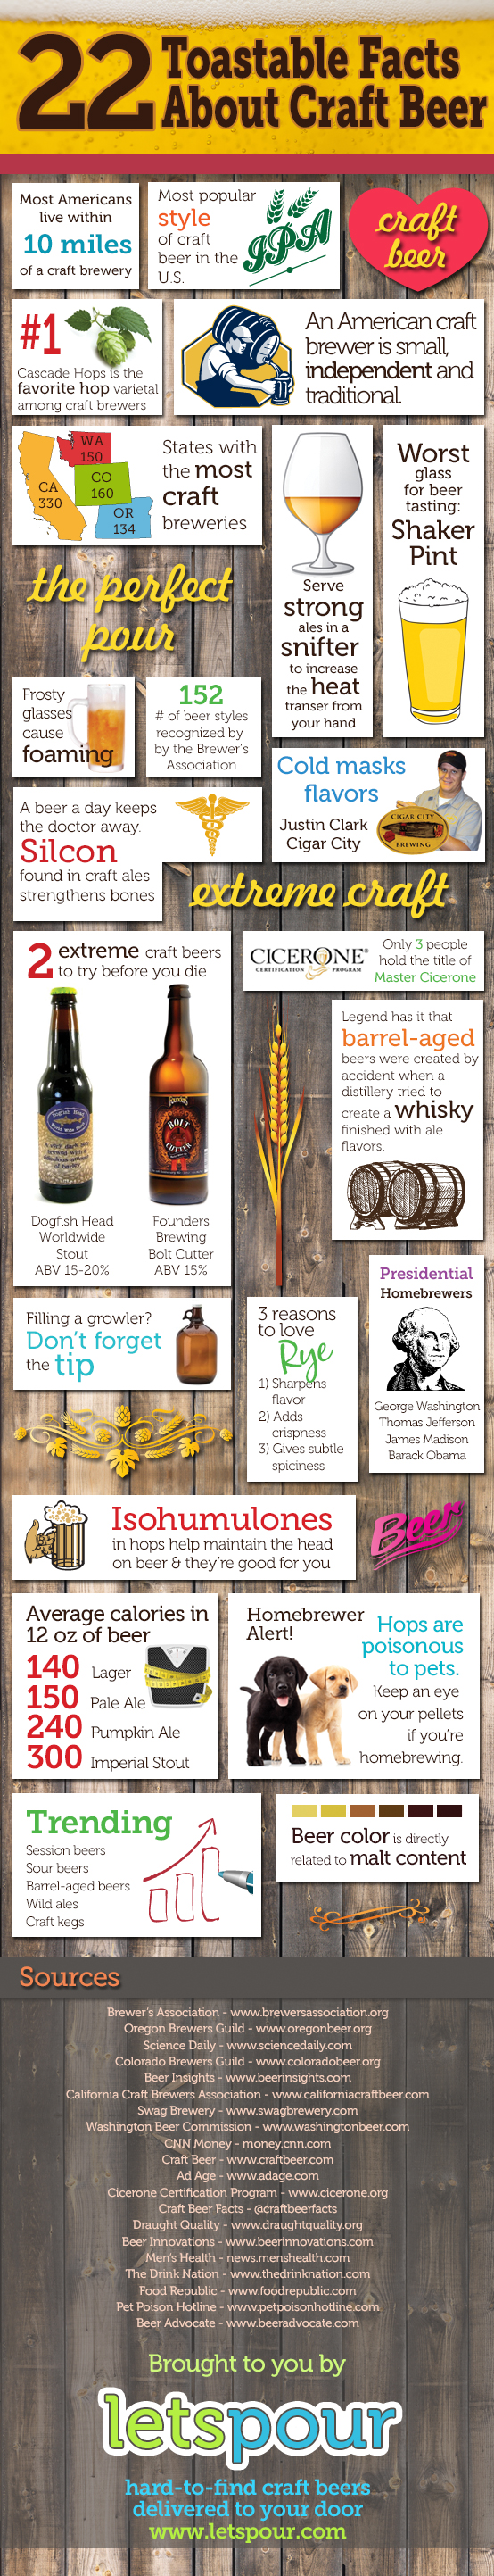 09 22-toastable-facts-about-craft-beer_527bebcabceaa